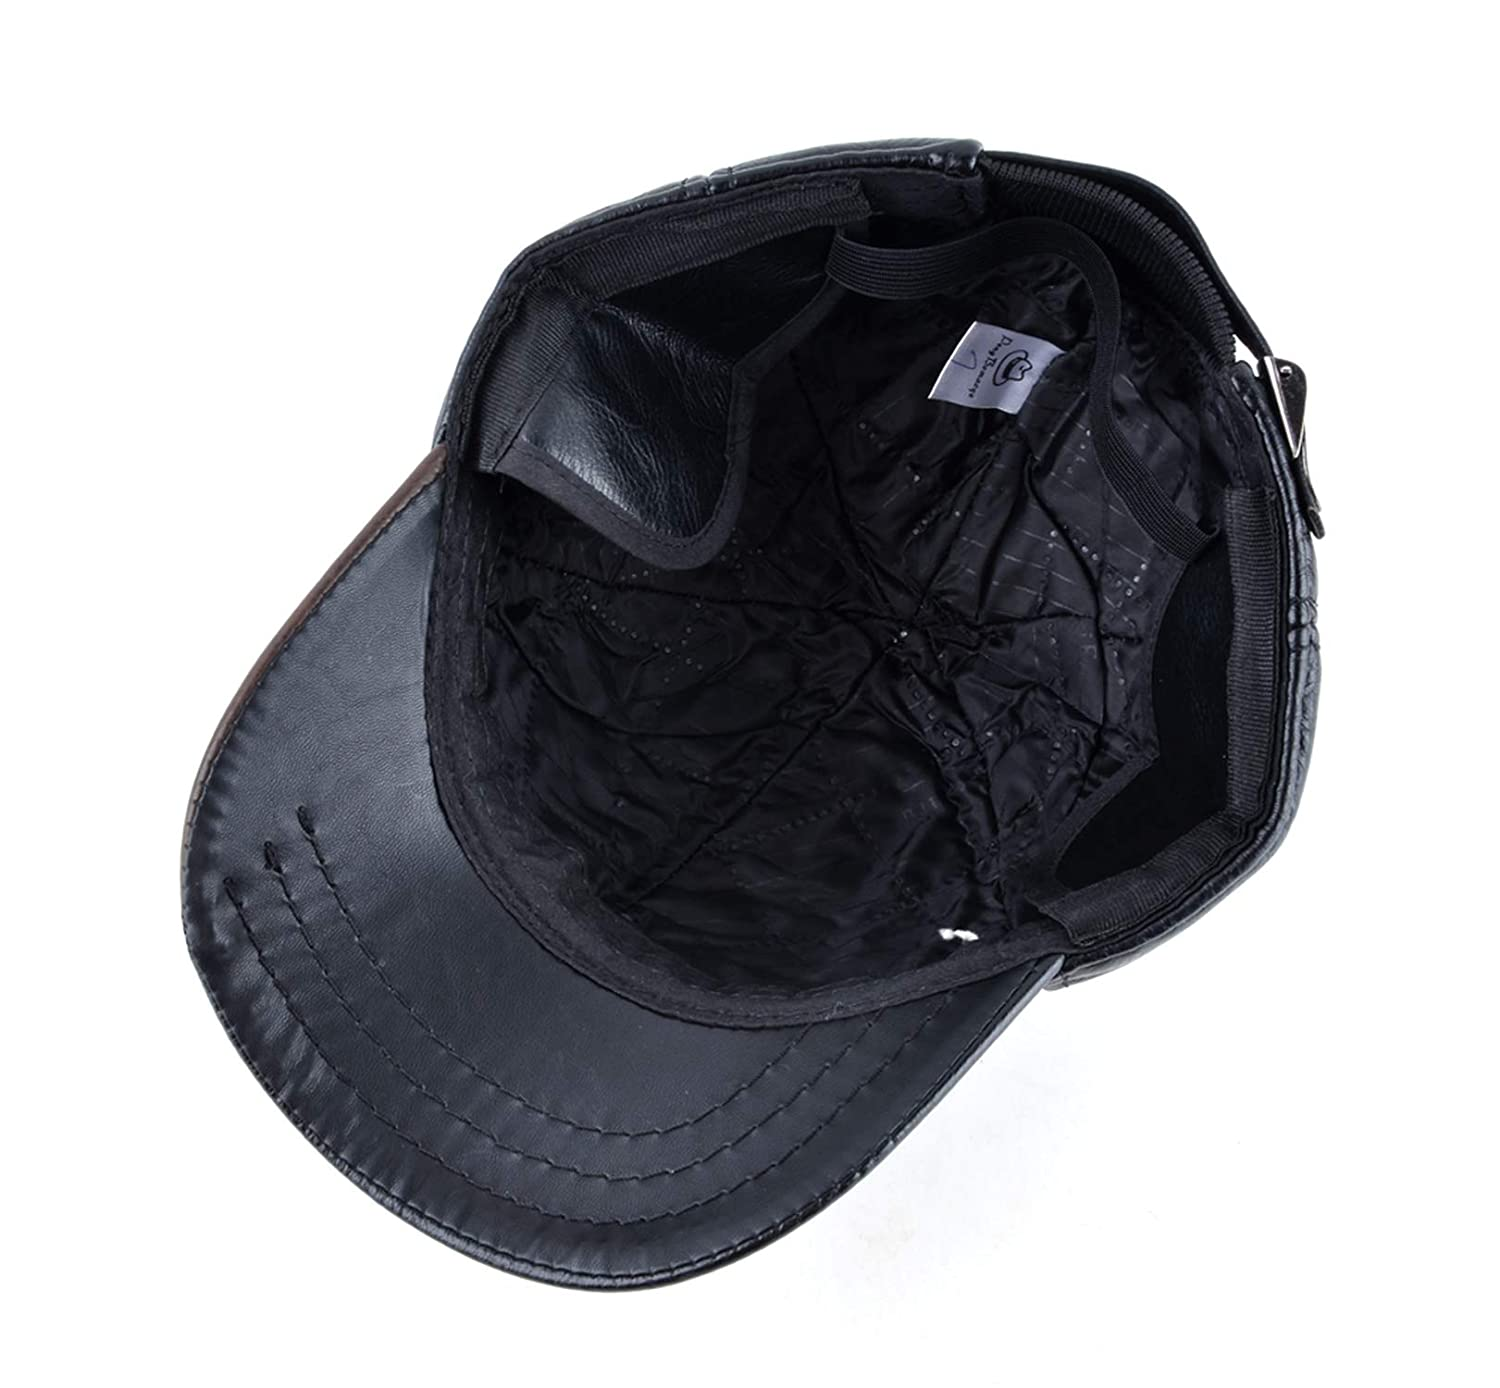 Mens Winter Leather Cap Warm Patchwork dad hat Baseball caps with Ear Flaps Russia Adjustable Snapback Hats